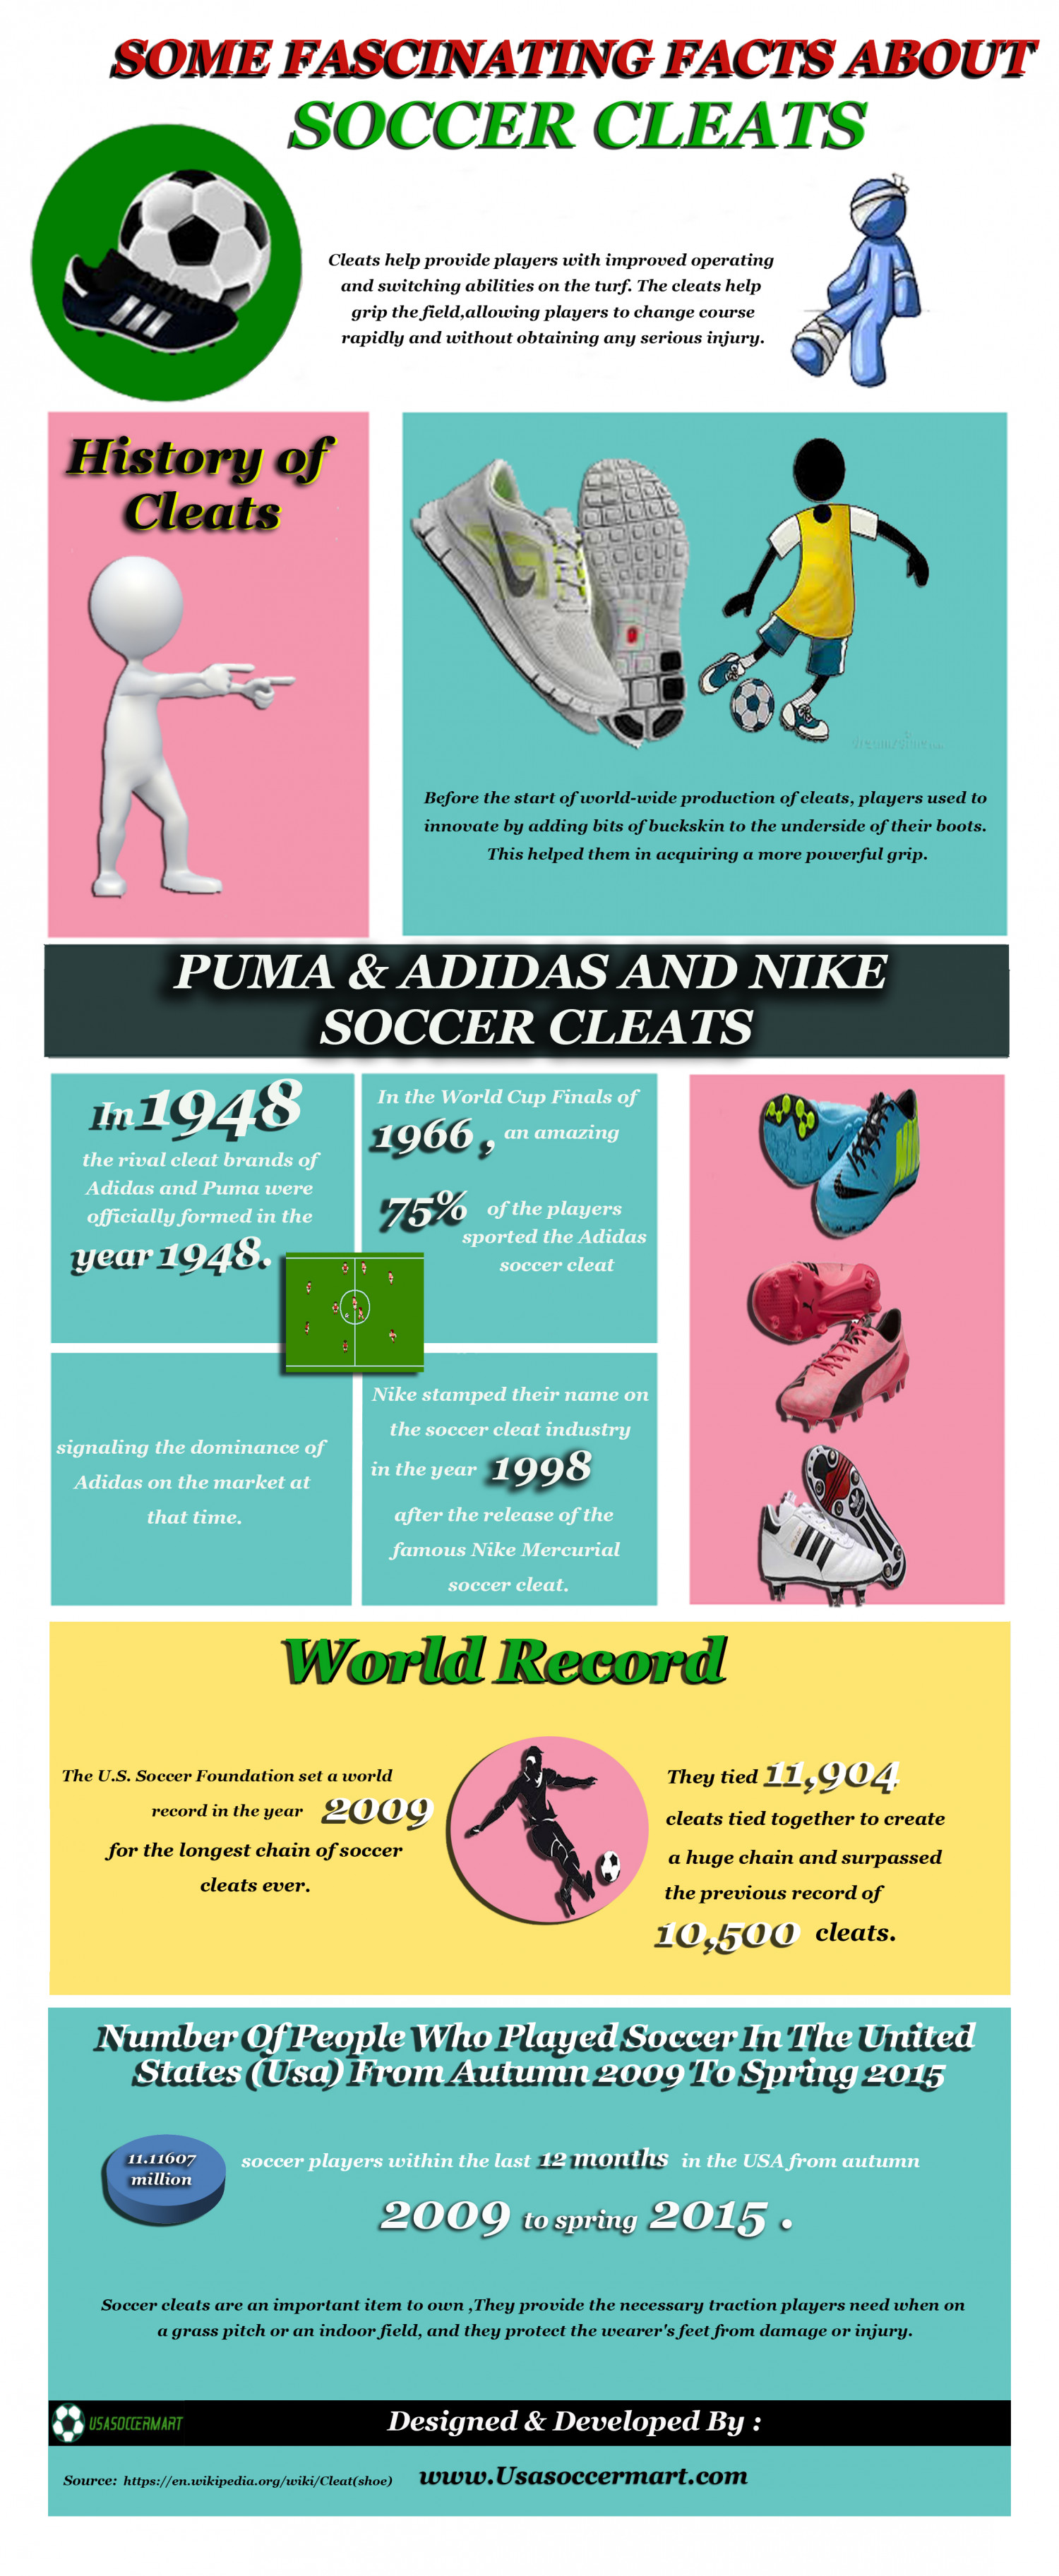 SOME FASCINATING FACTS ABOUT SOCCER CLEATS Infographic